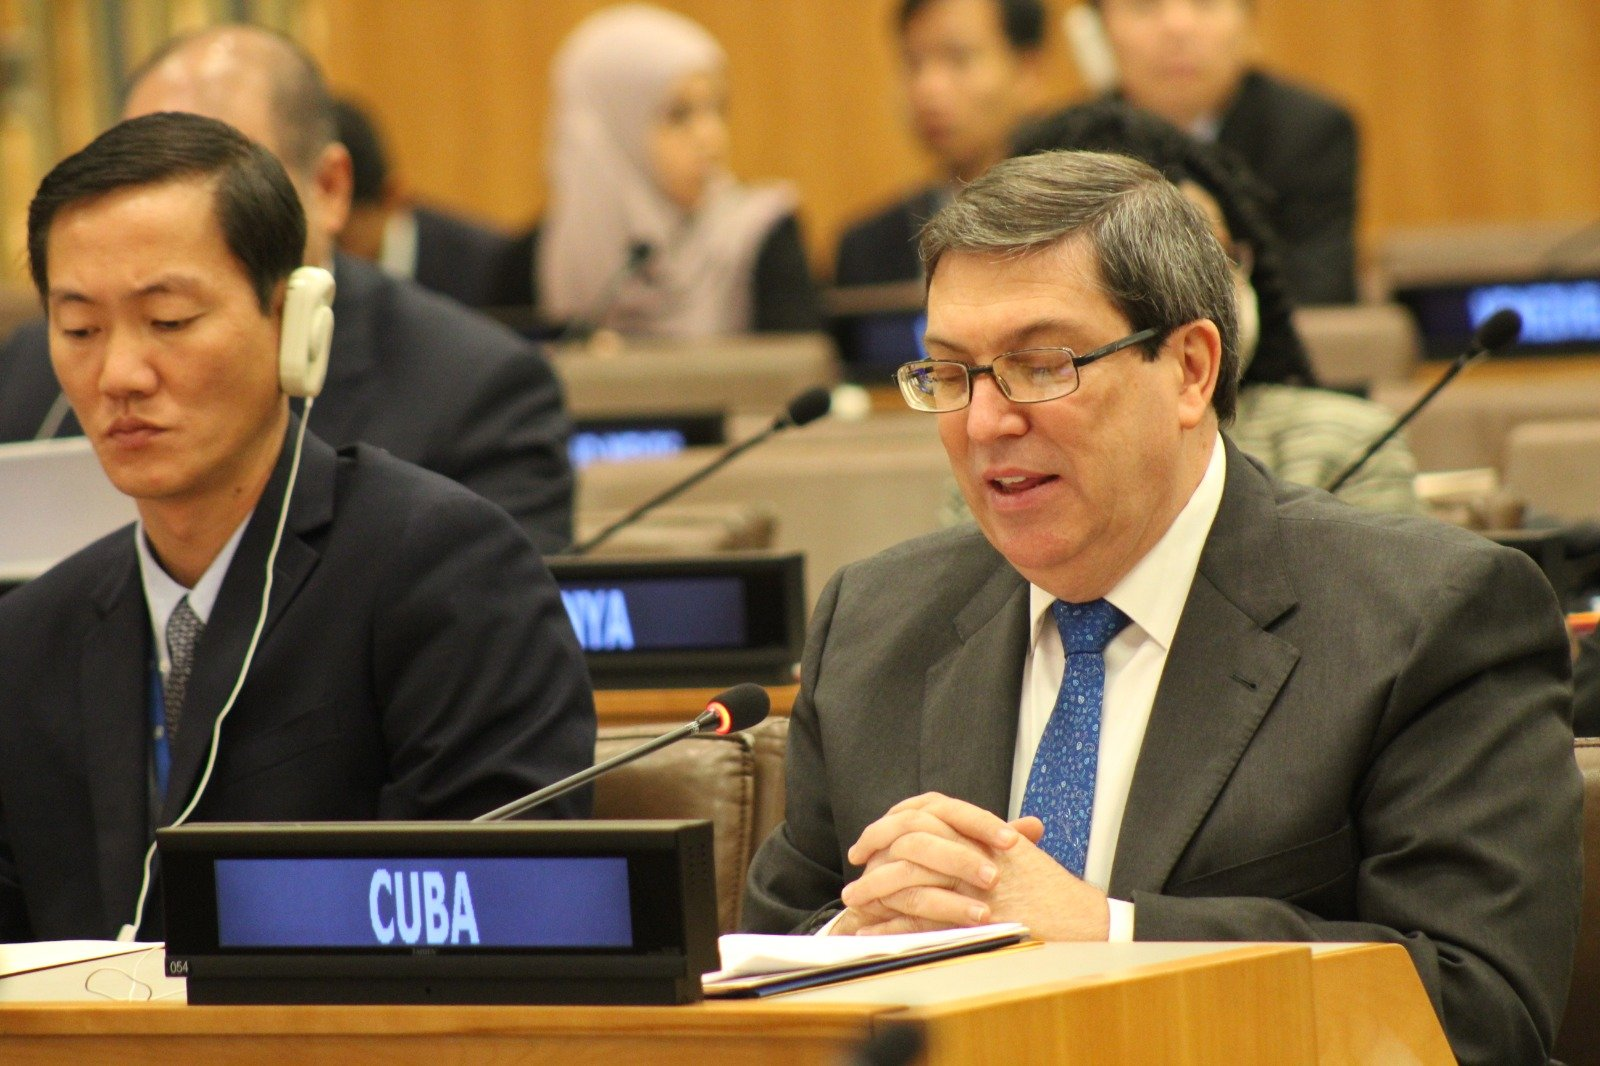 Cuba condemns in international forum the escalation of the US hostile policy